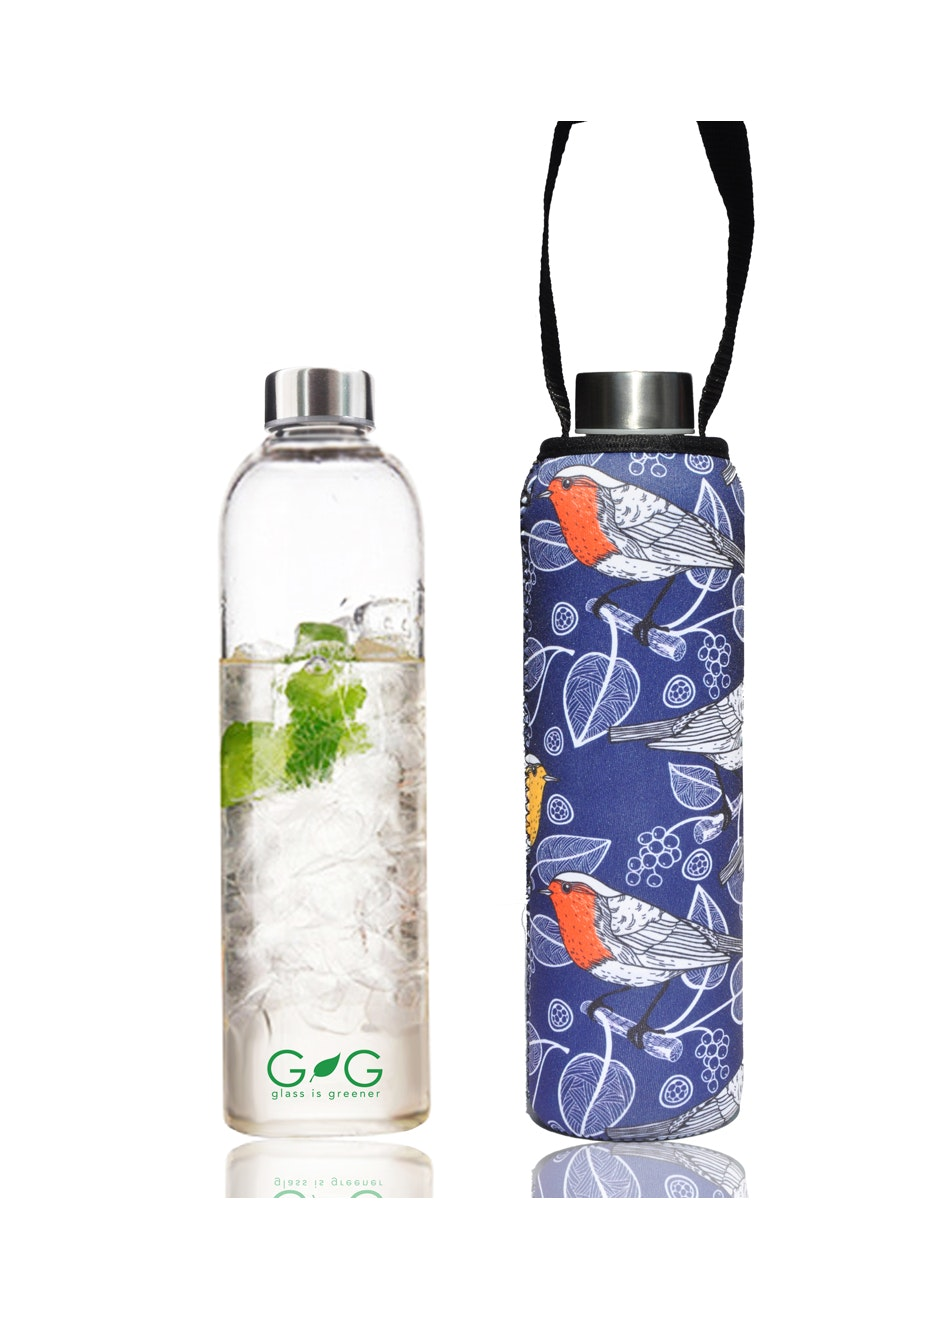 BBBYO - Glass Is Greener Bottle 750 ml + Carry Cover (Sparrow Print) -750 ml